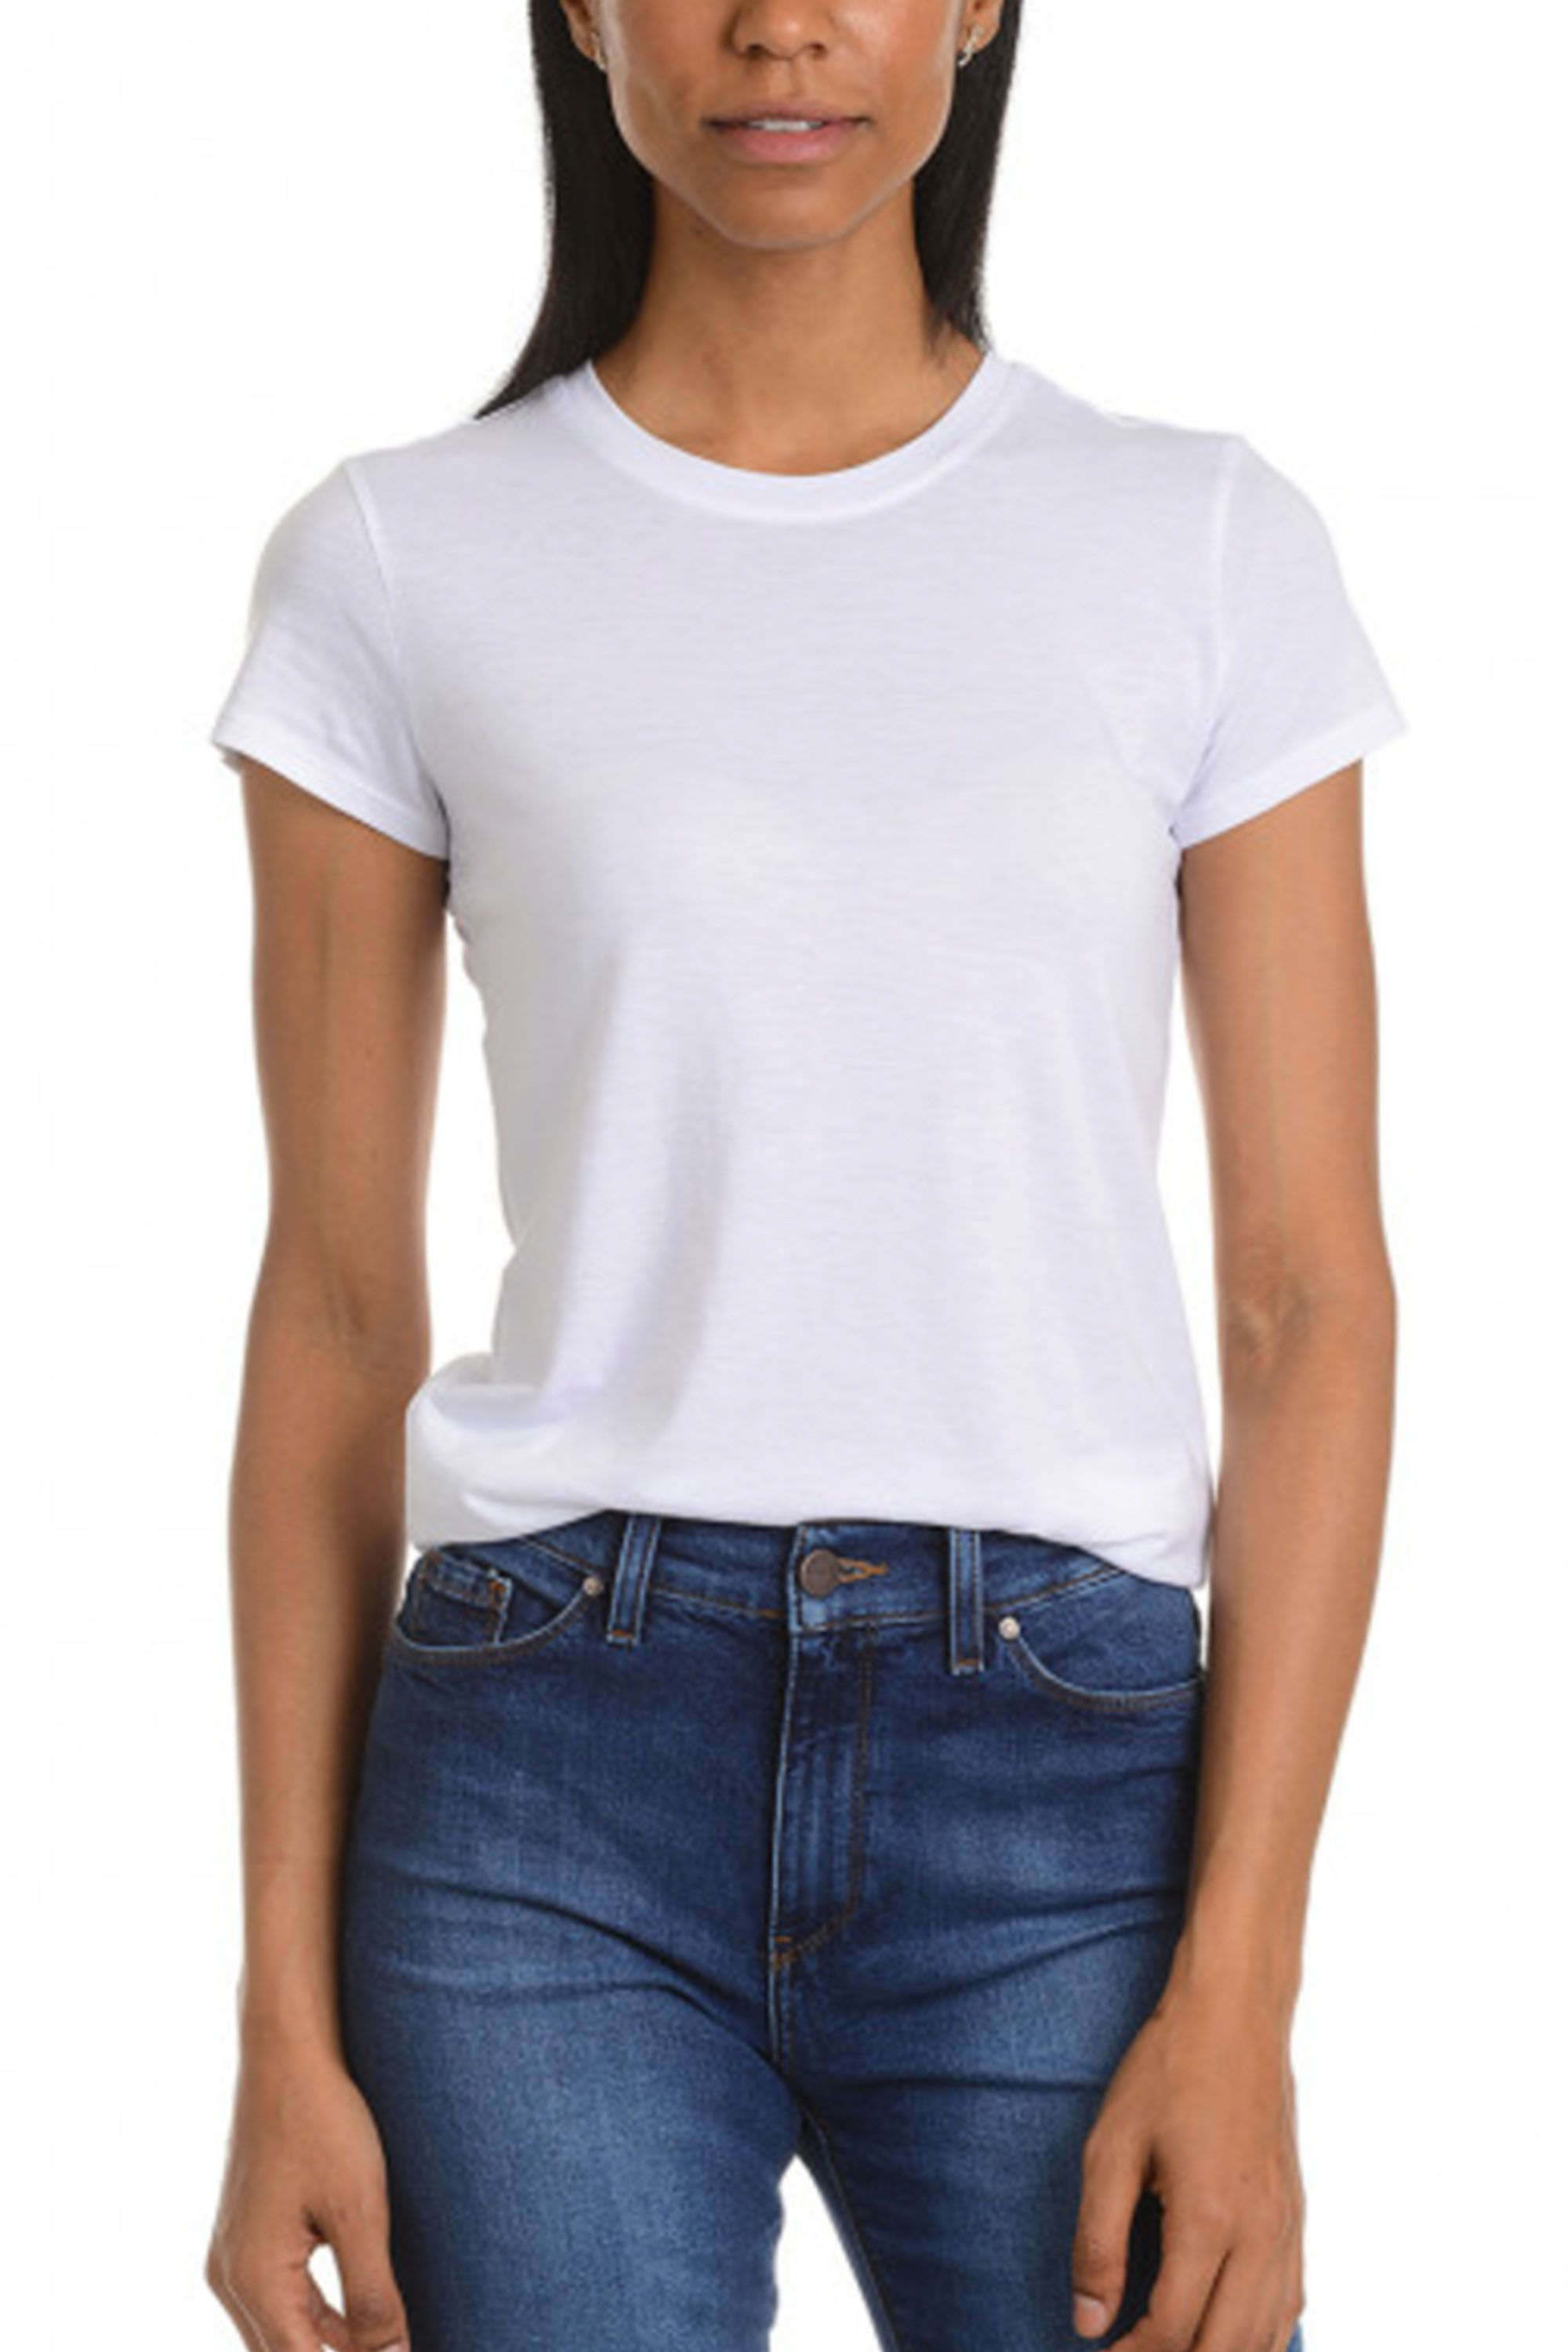 c2eaffe1cf5 7 Best White T Shirts - Perfect White Tee Shirts To Add to Your Summer  Wardrobe